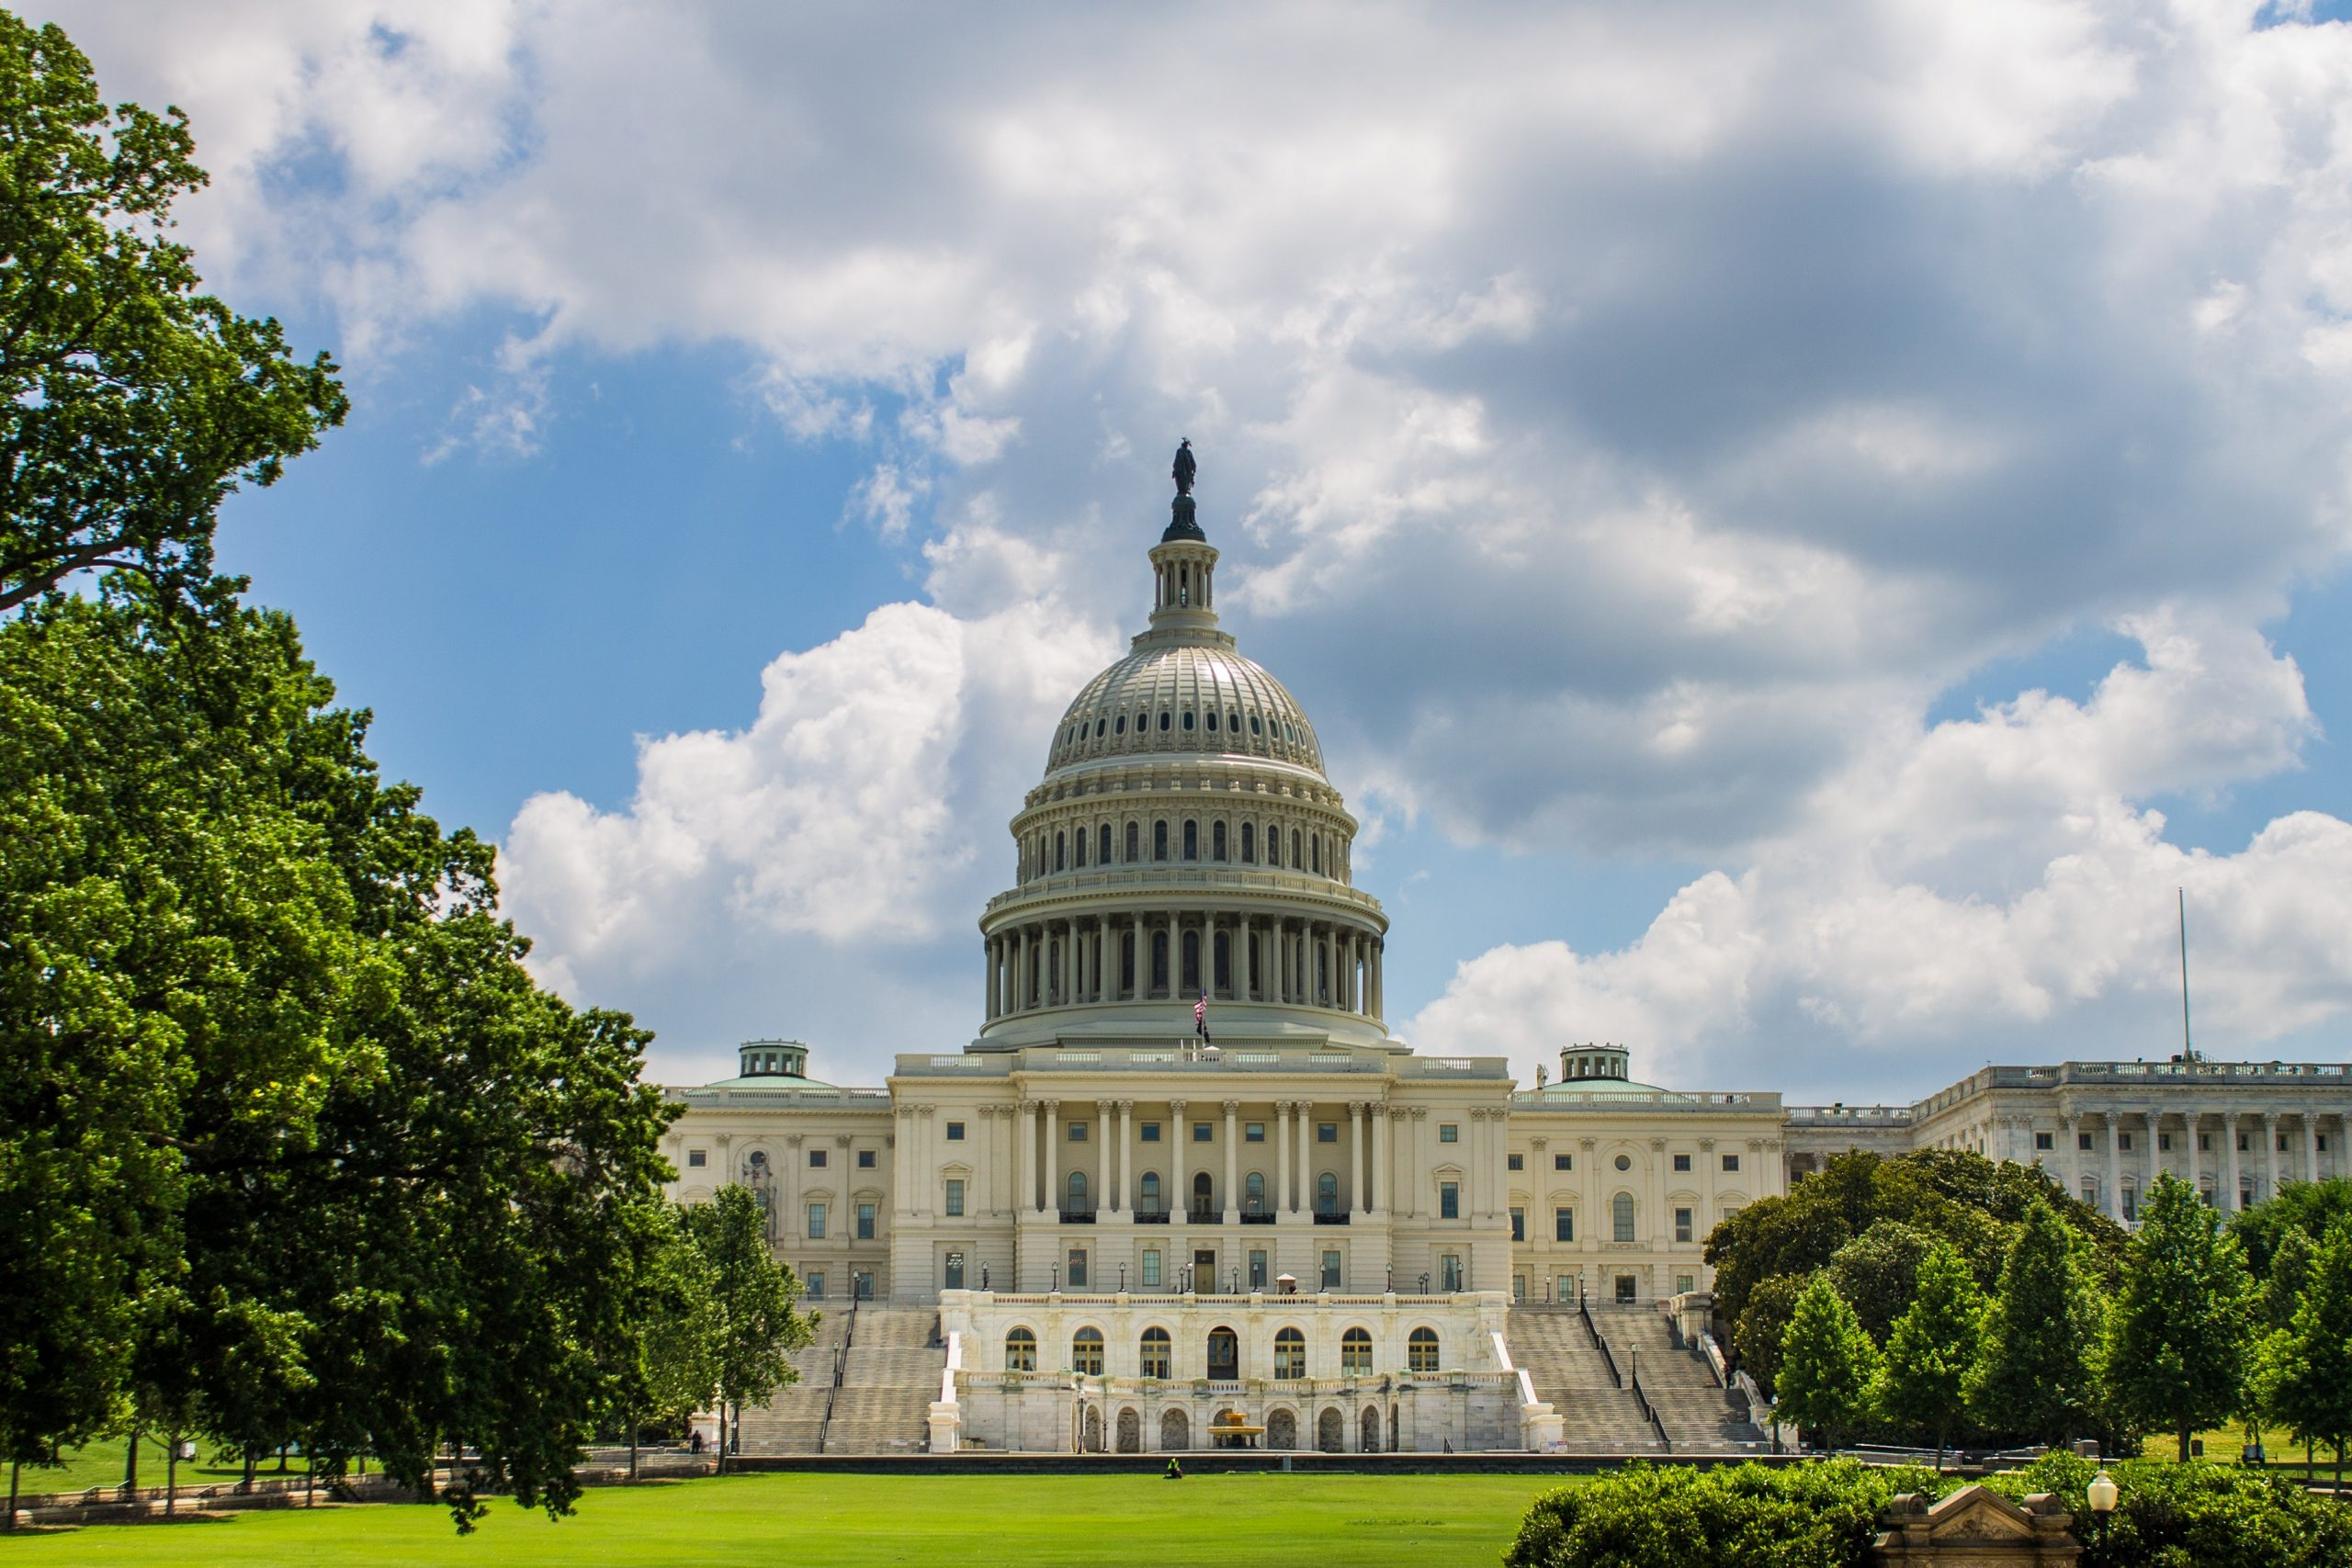 cannabis news - the US capitol building on a partly cloudy day